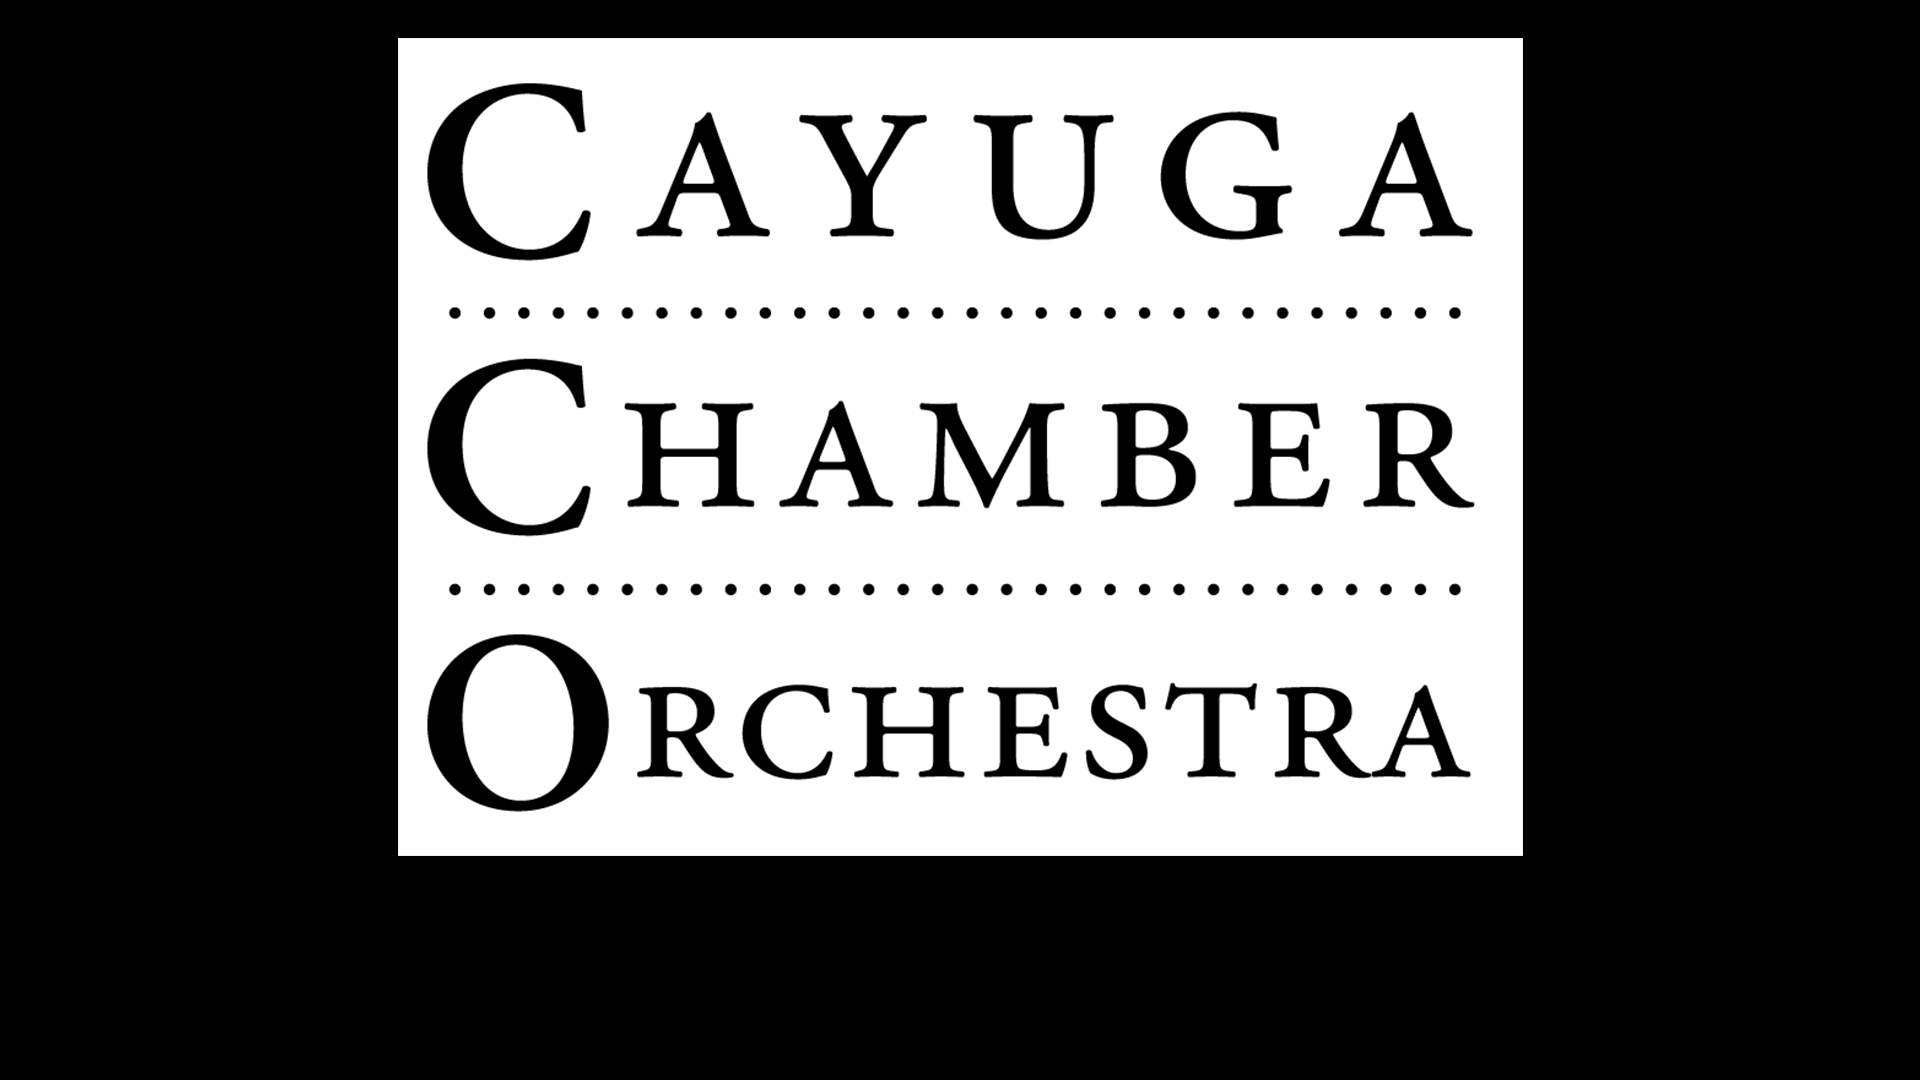 Ithaca-NY-2-student-subscriptions-Cayuga-Chamber-Orchestra-172-value